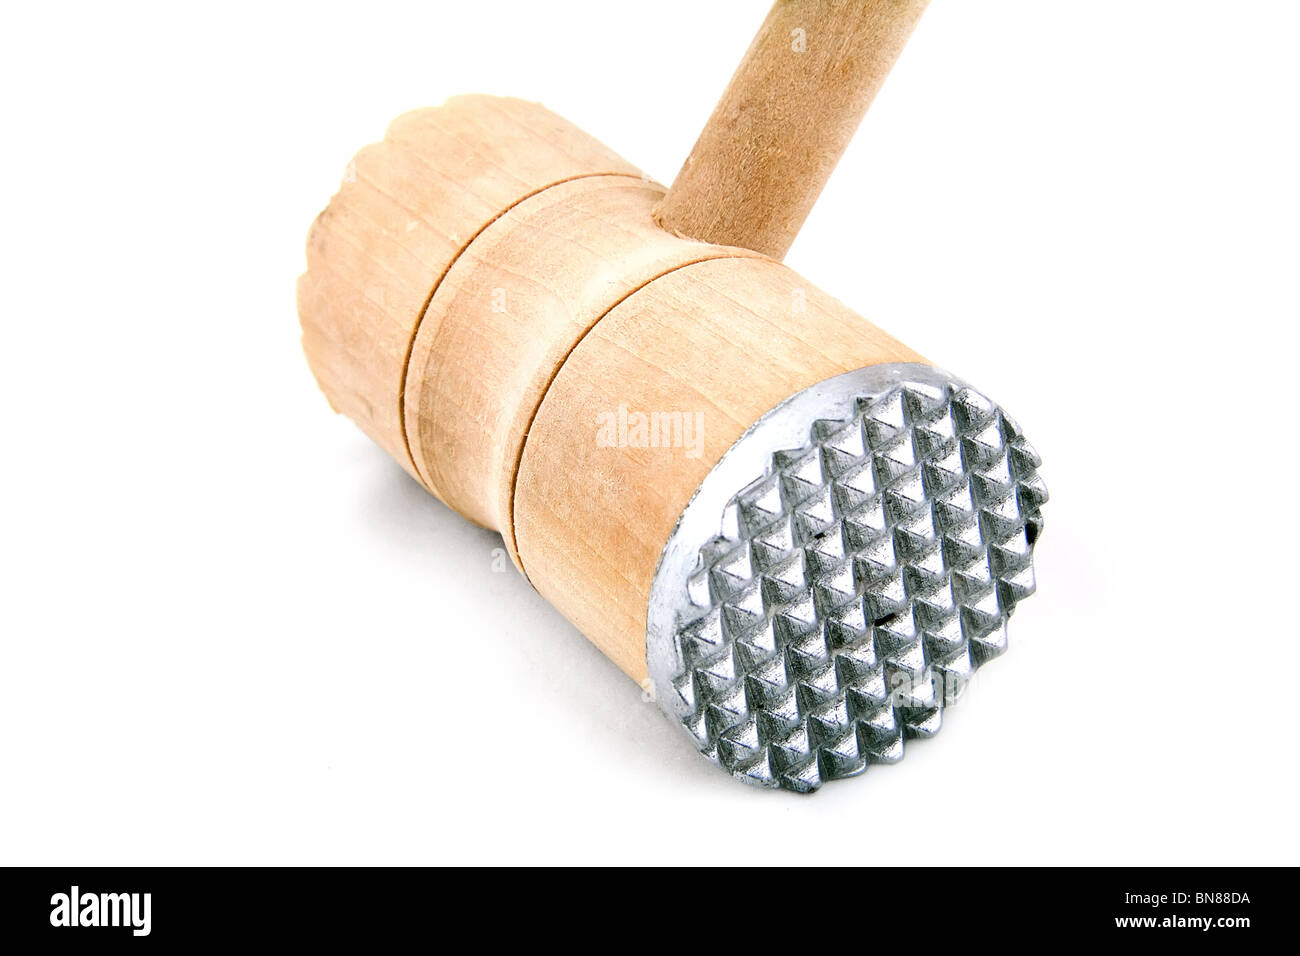 Meat tenderizer. Wooden meat hammer on white background. Stock Photo